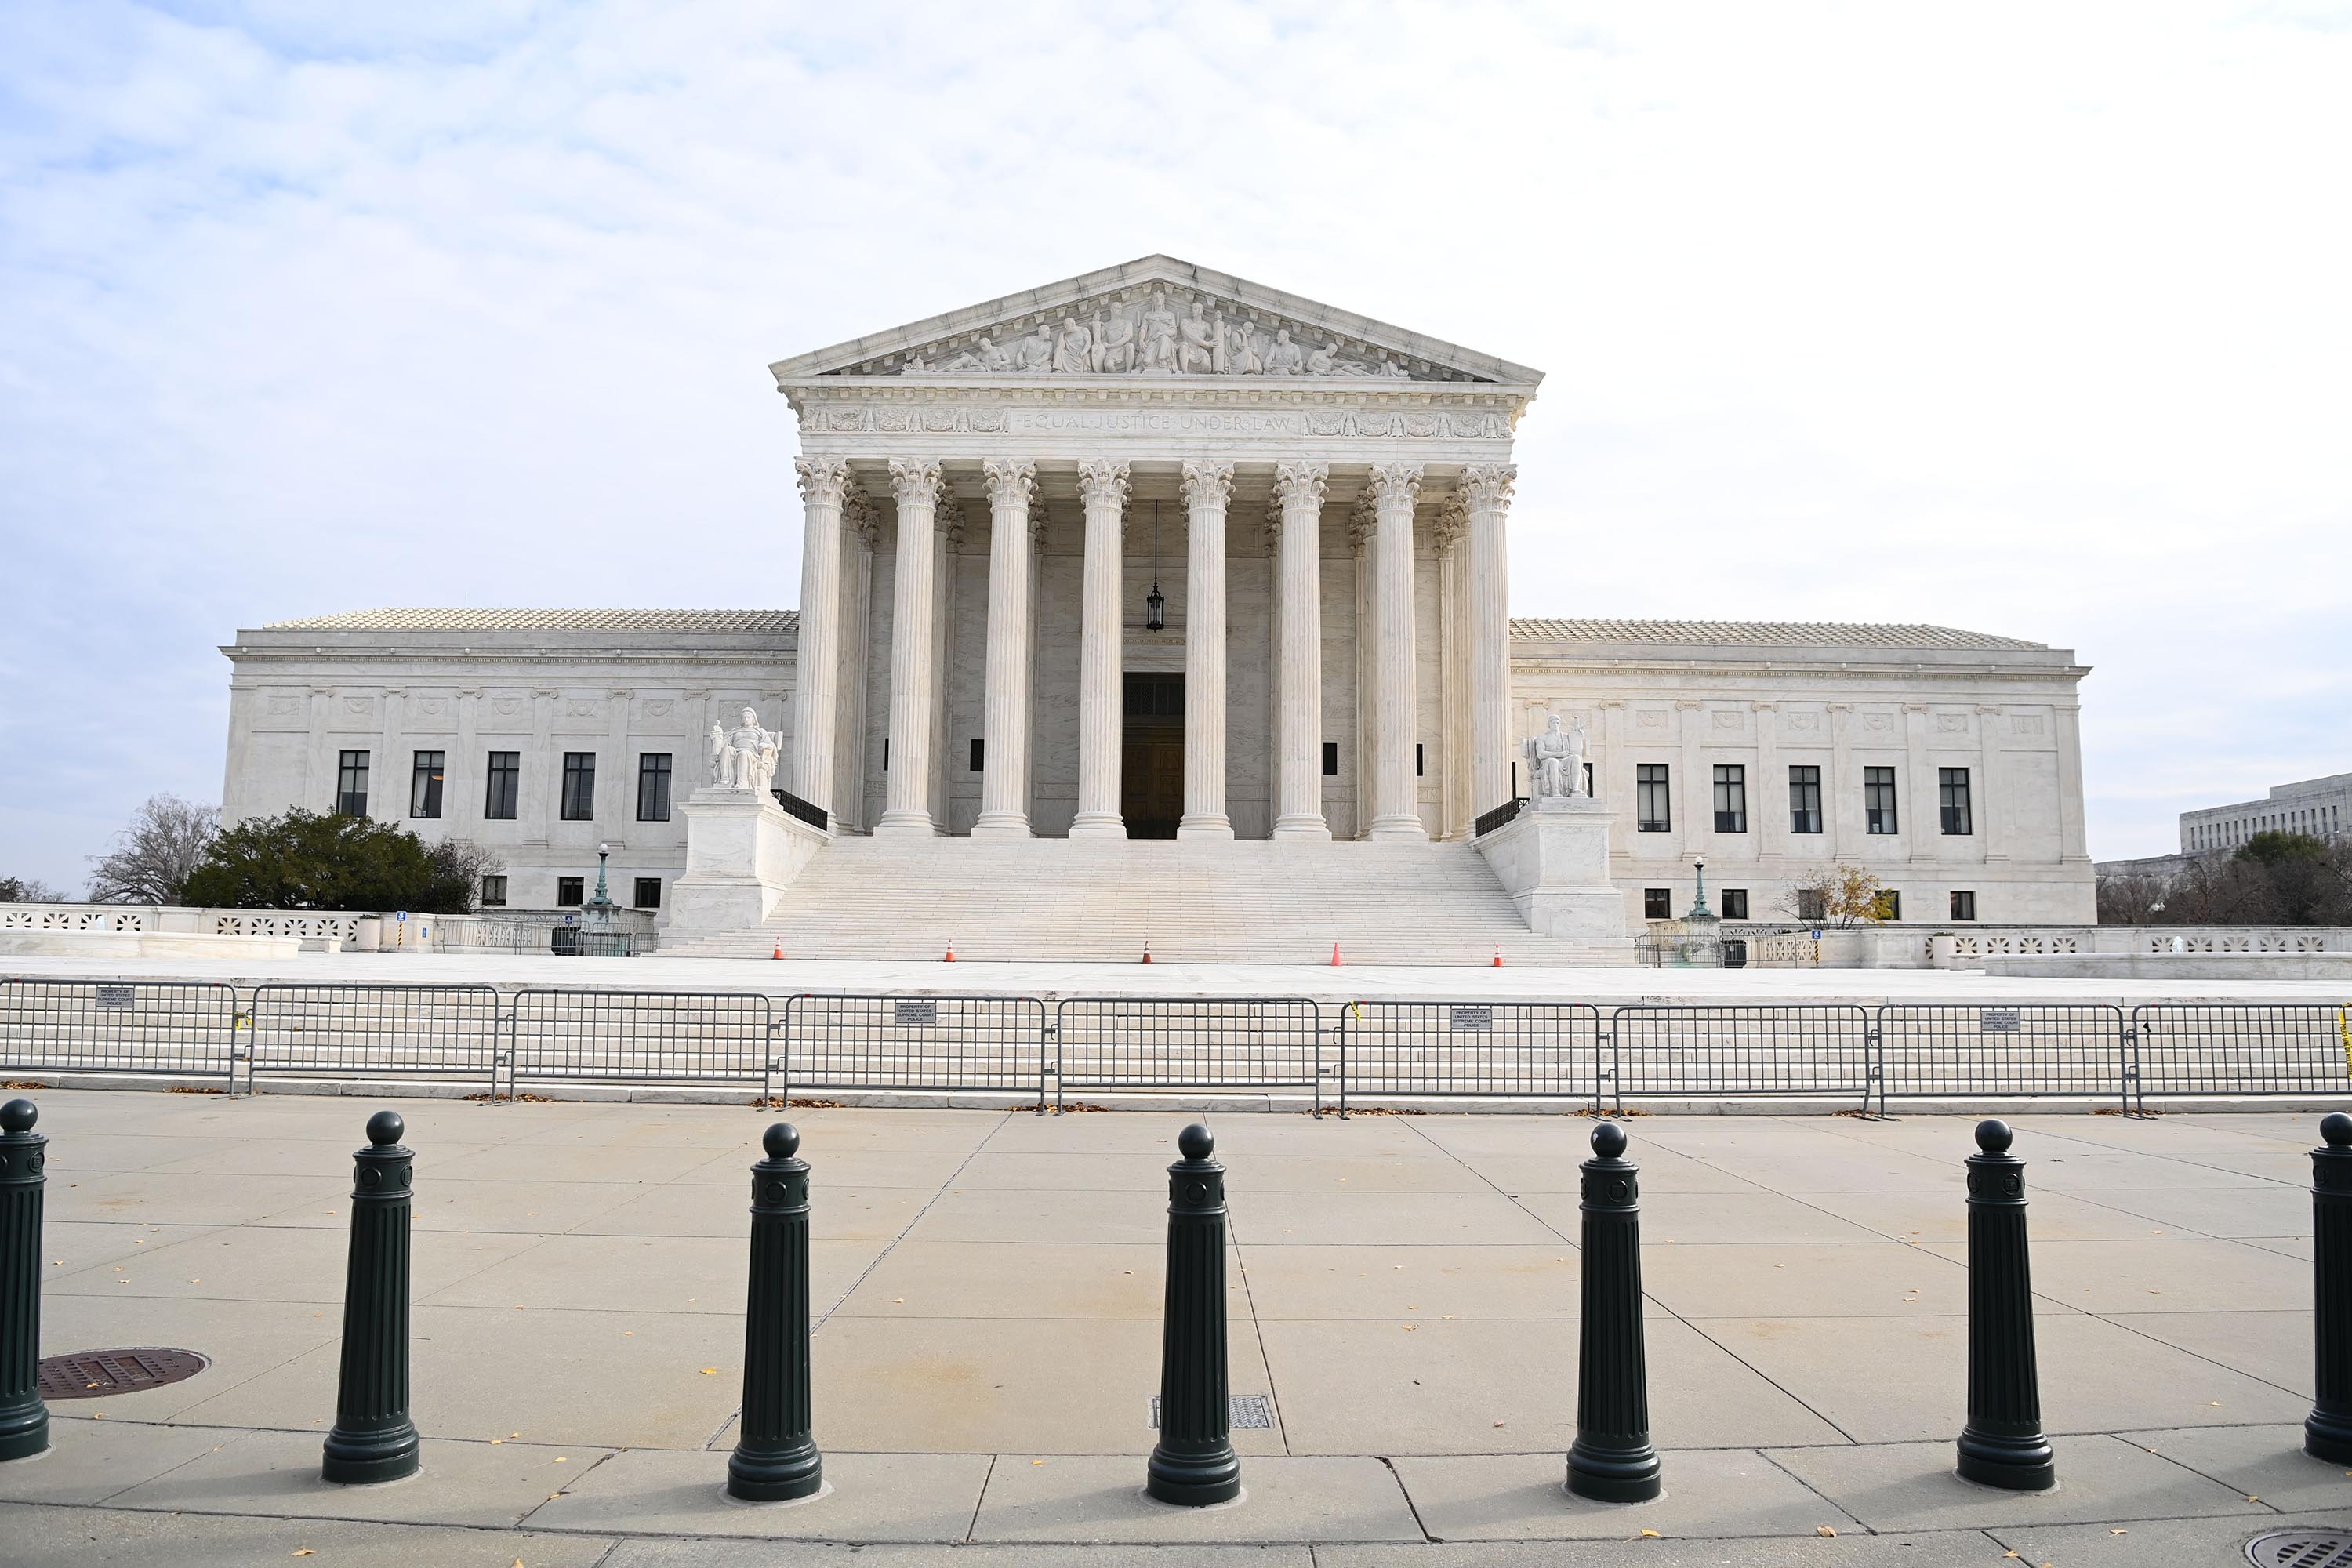 The Supreme Court building is seen on December 7.